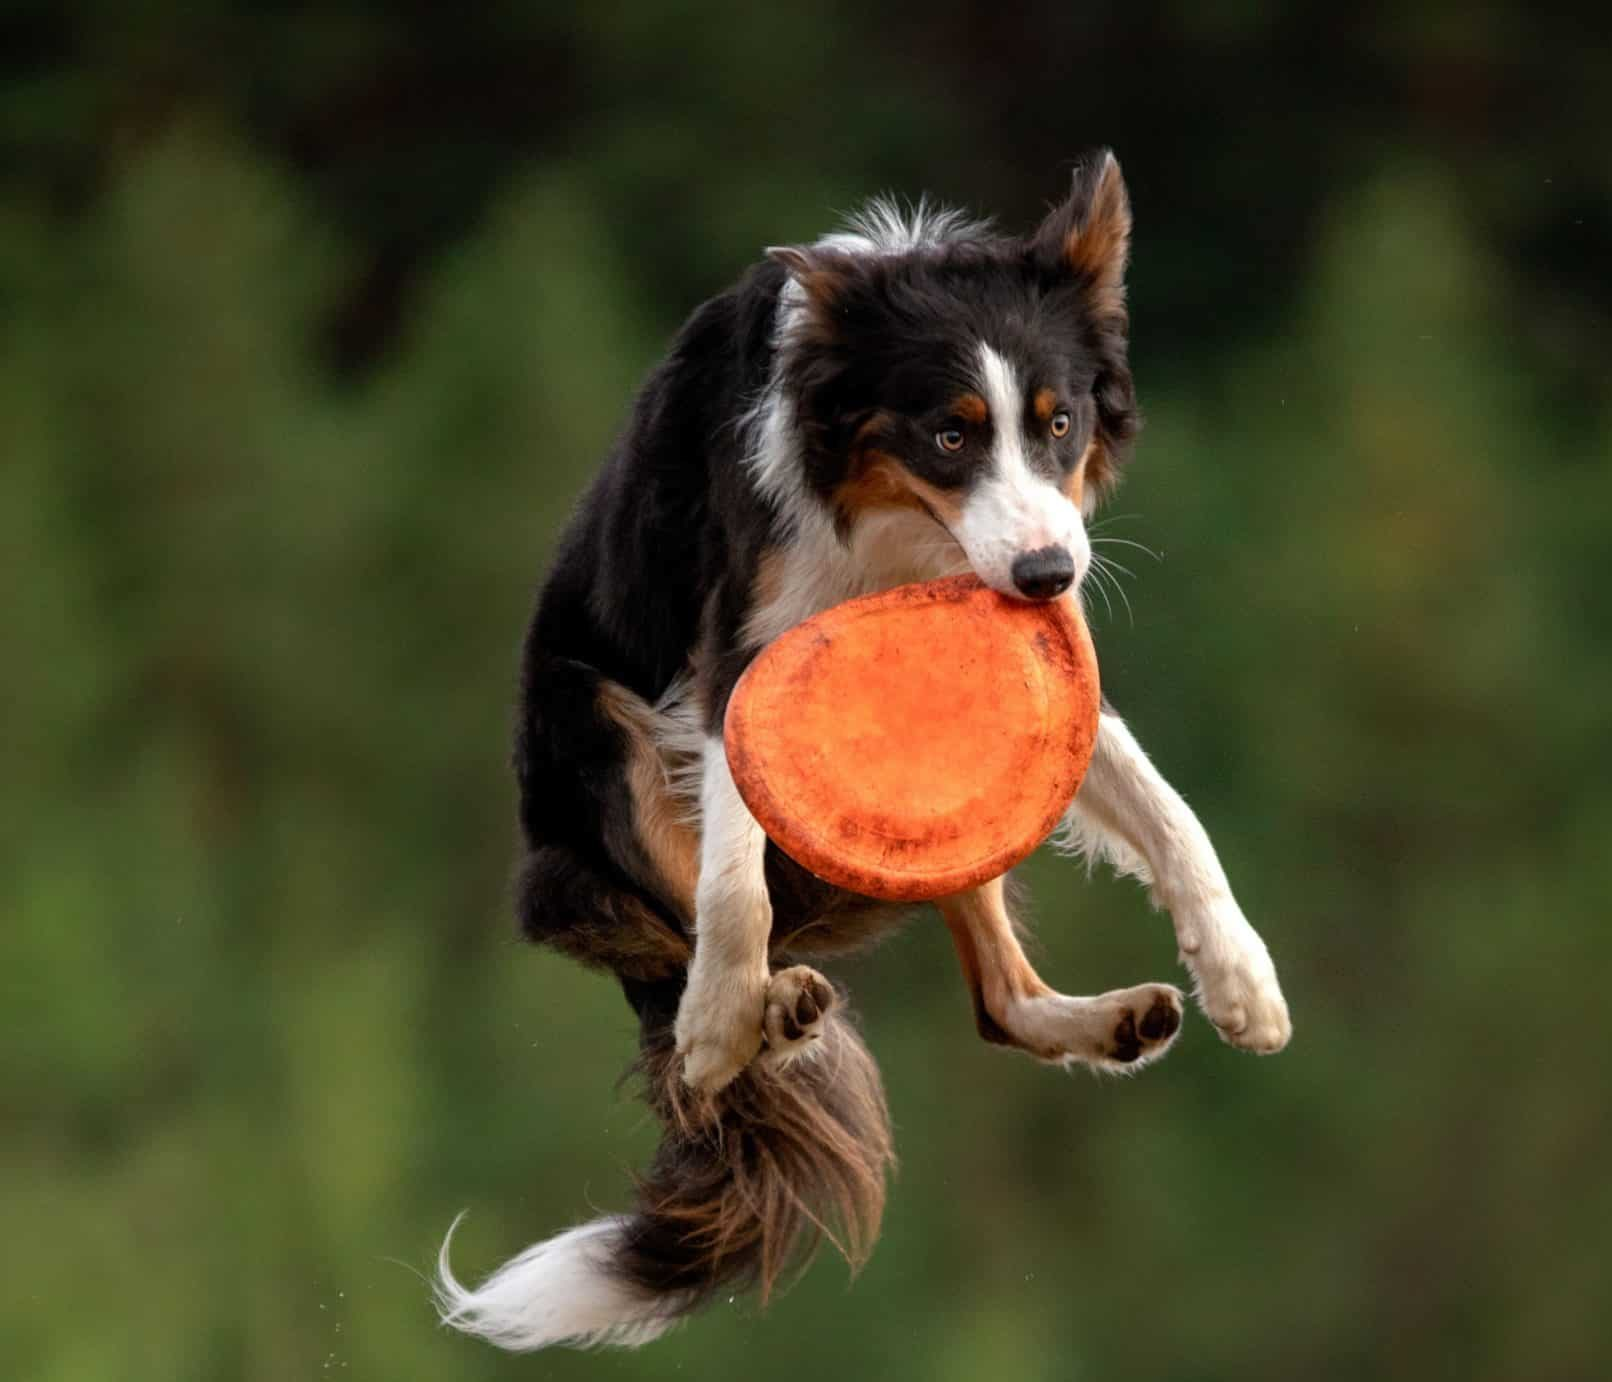 Border collie plays frisbee. Border collies are smart dogs eager to learn new tricks.